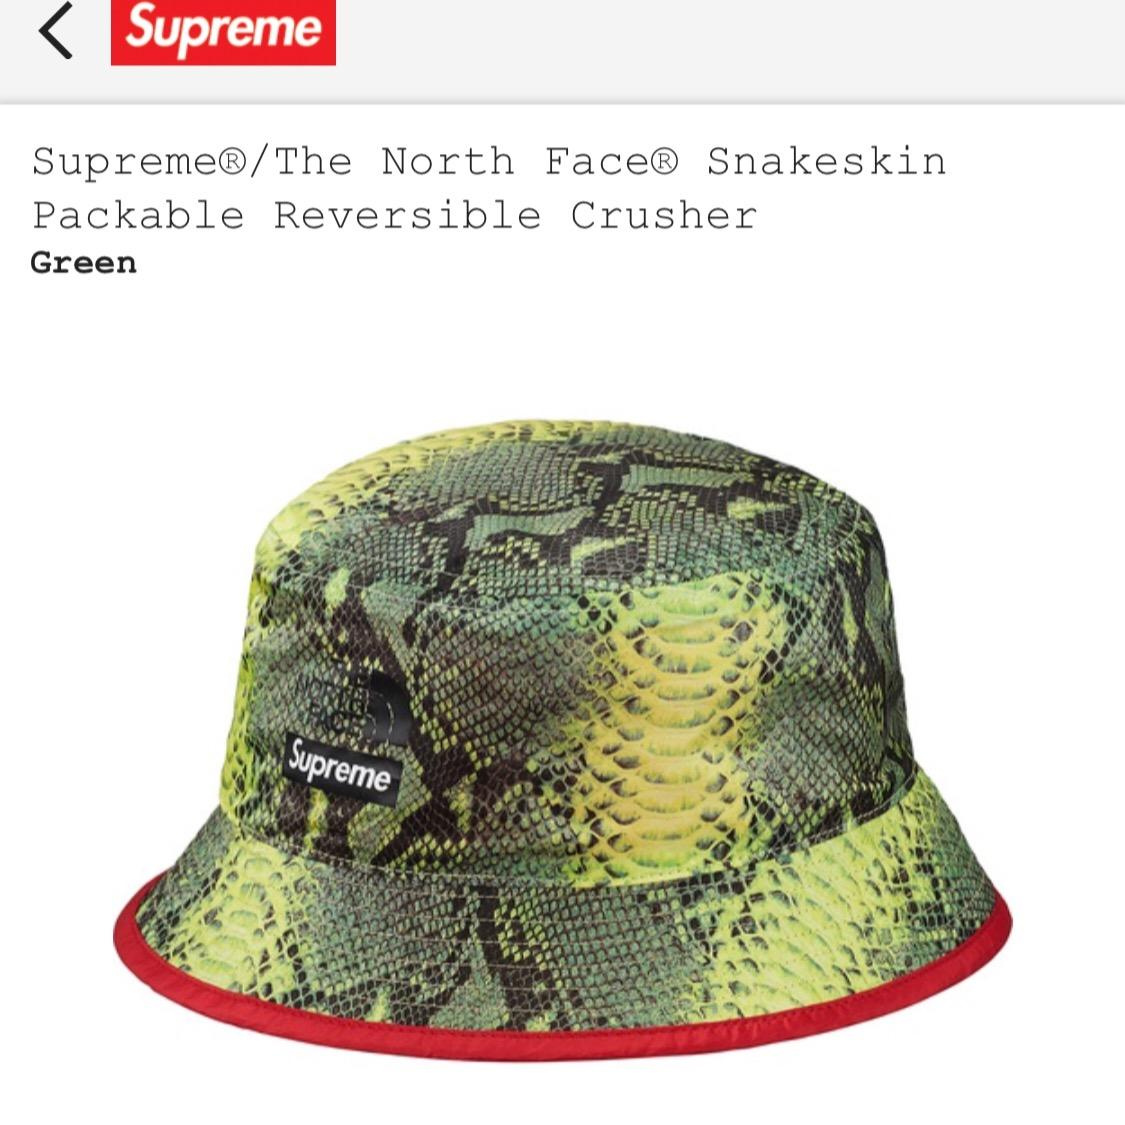 52371be2d2a4c Supreme X The North Face snakeskin reversible packable crusher ...